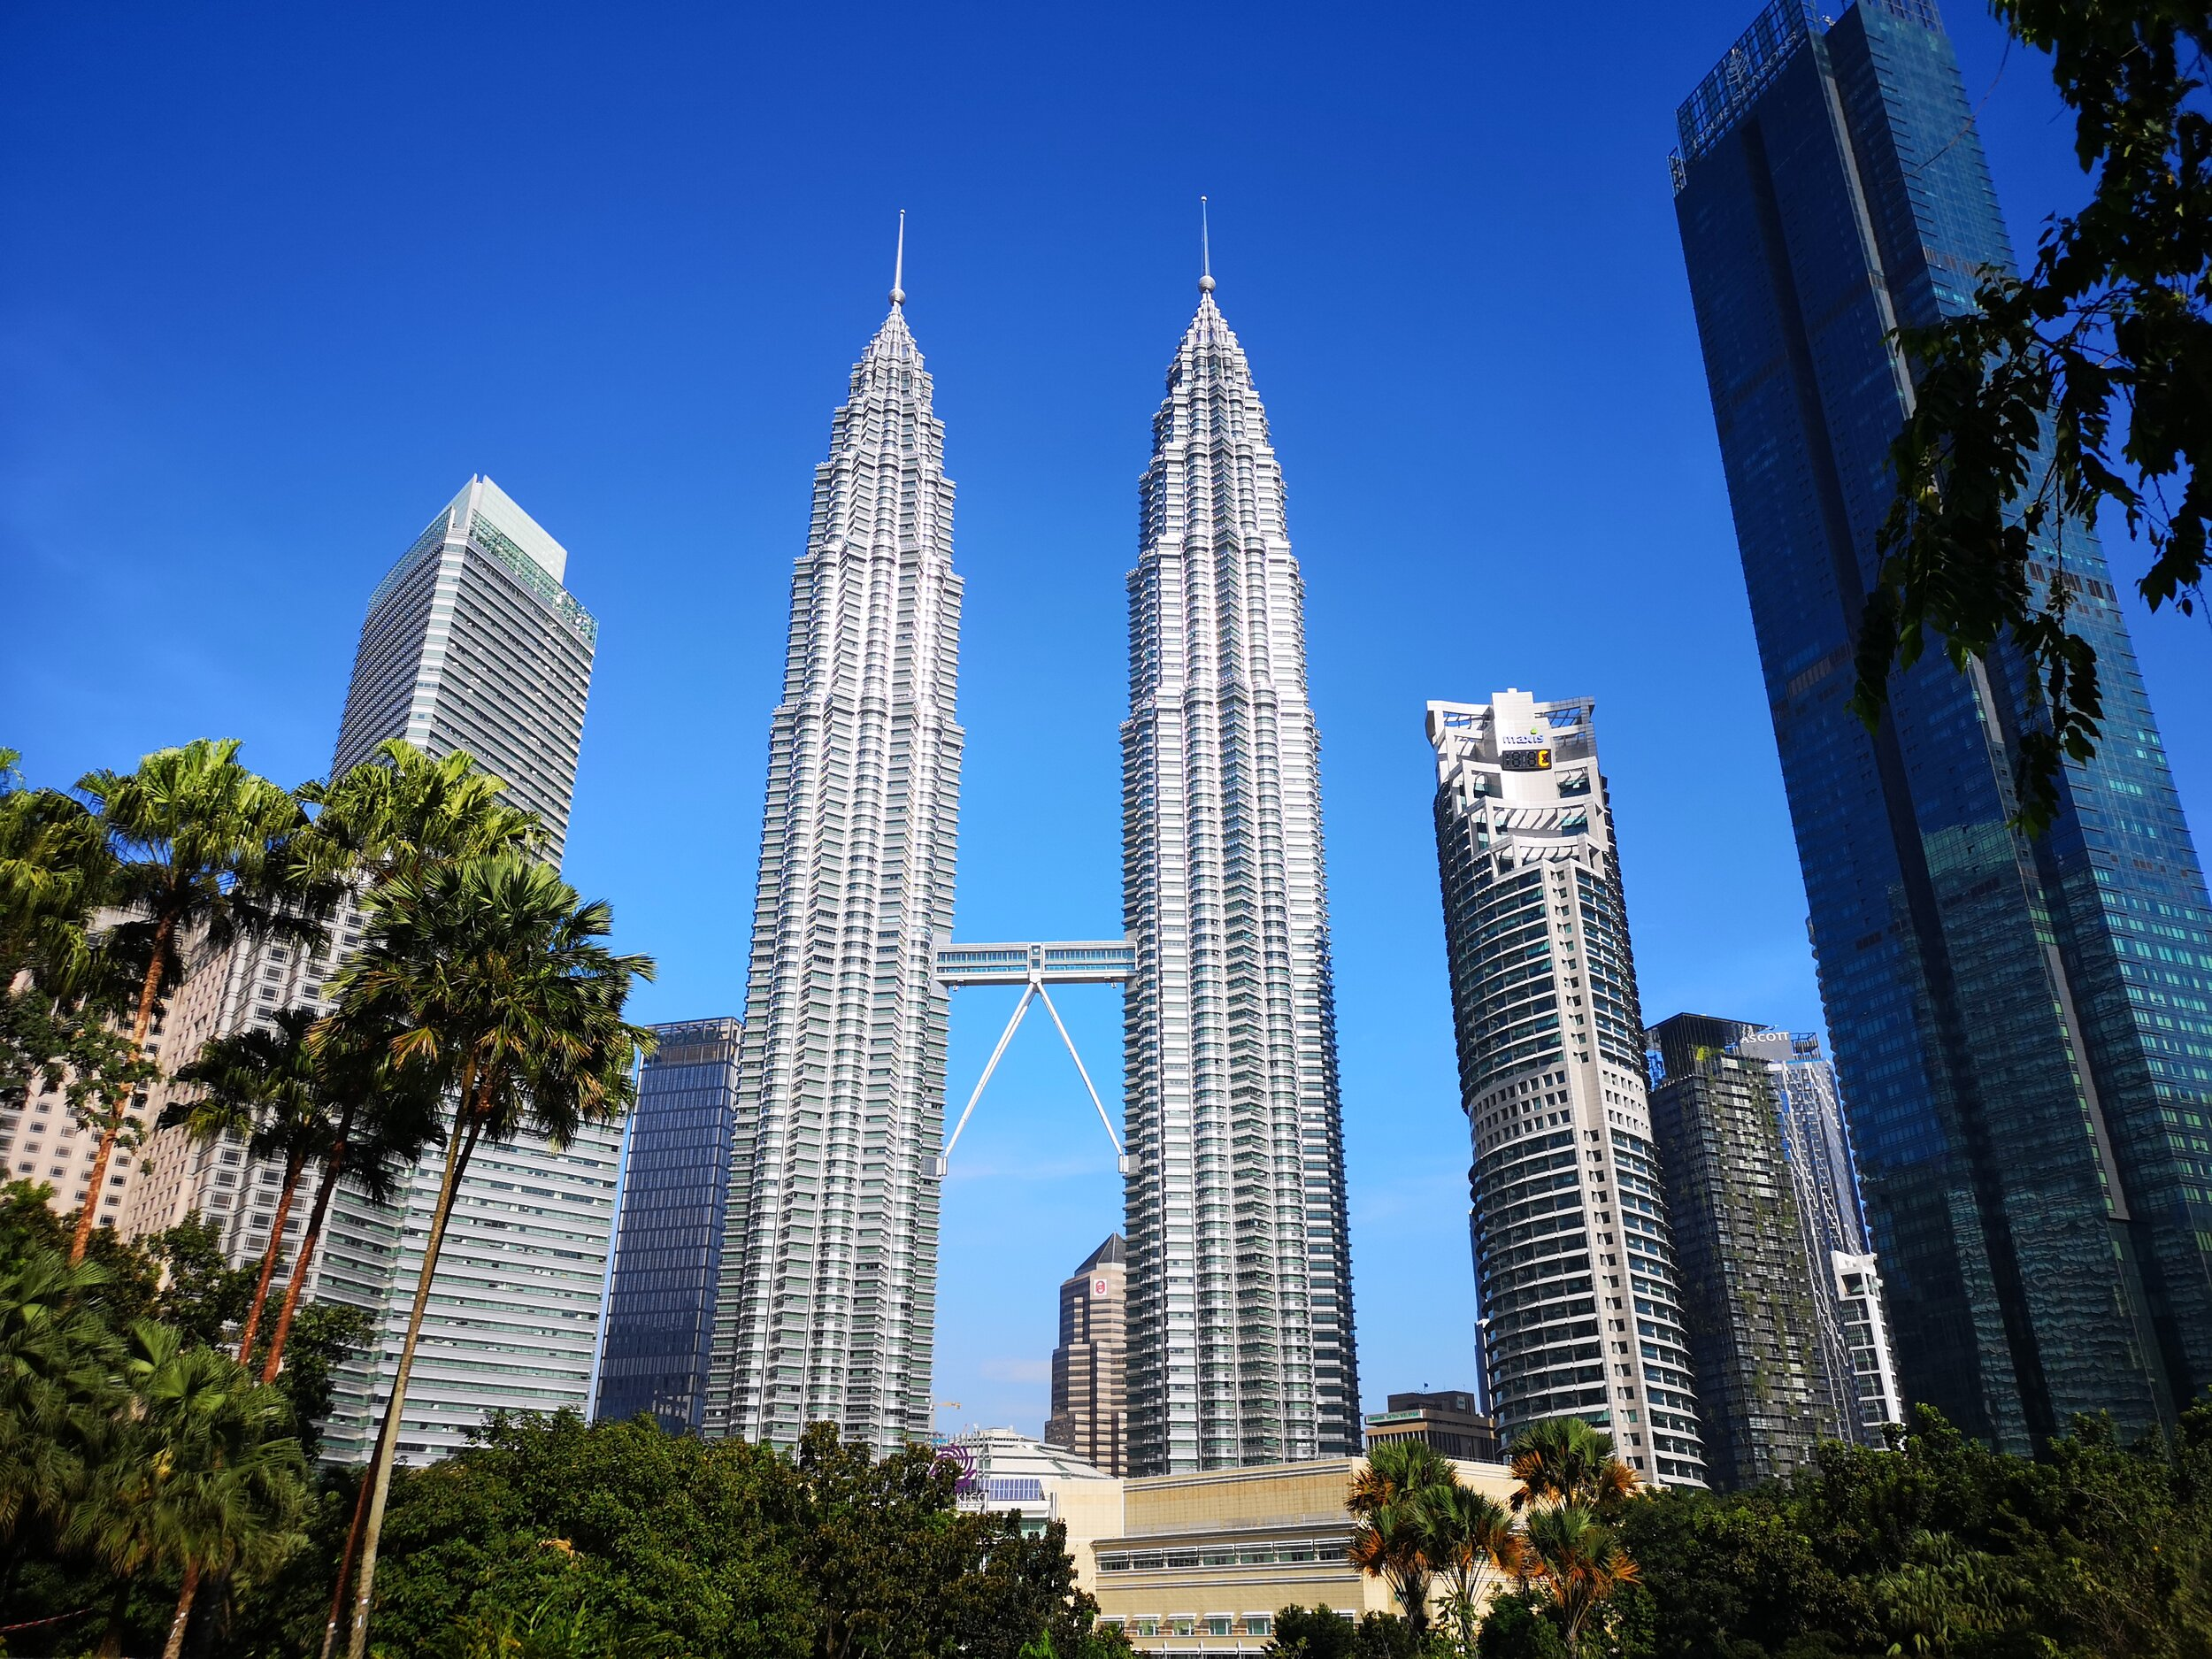 Twin Towers in Kuala Lumpur and the KLCC. The city appears to be a viable alternative to Hong Kong when it comes to having a South East Asia headquarter. And it is much less cramped also.